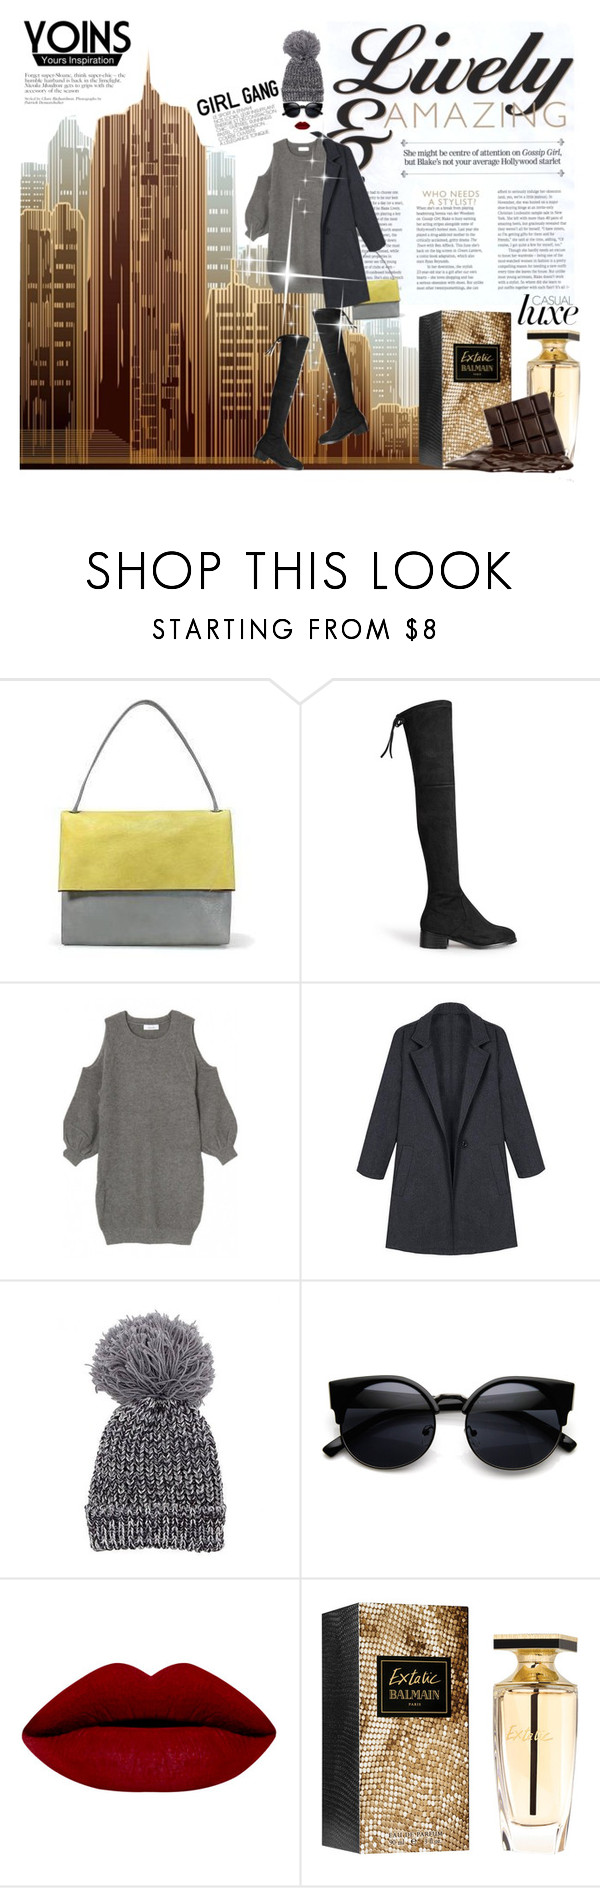 """""""Girl in the city """" by madlenbellucci ❤ liked on Polyvore featuring мода, Balmain, women's clothing, women's fashion, women, female, woman, misses, juniors и genuinepeople"""